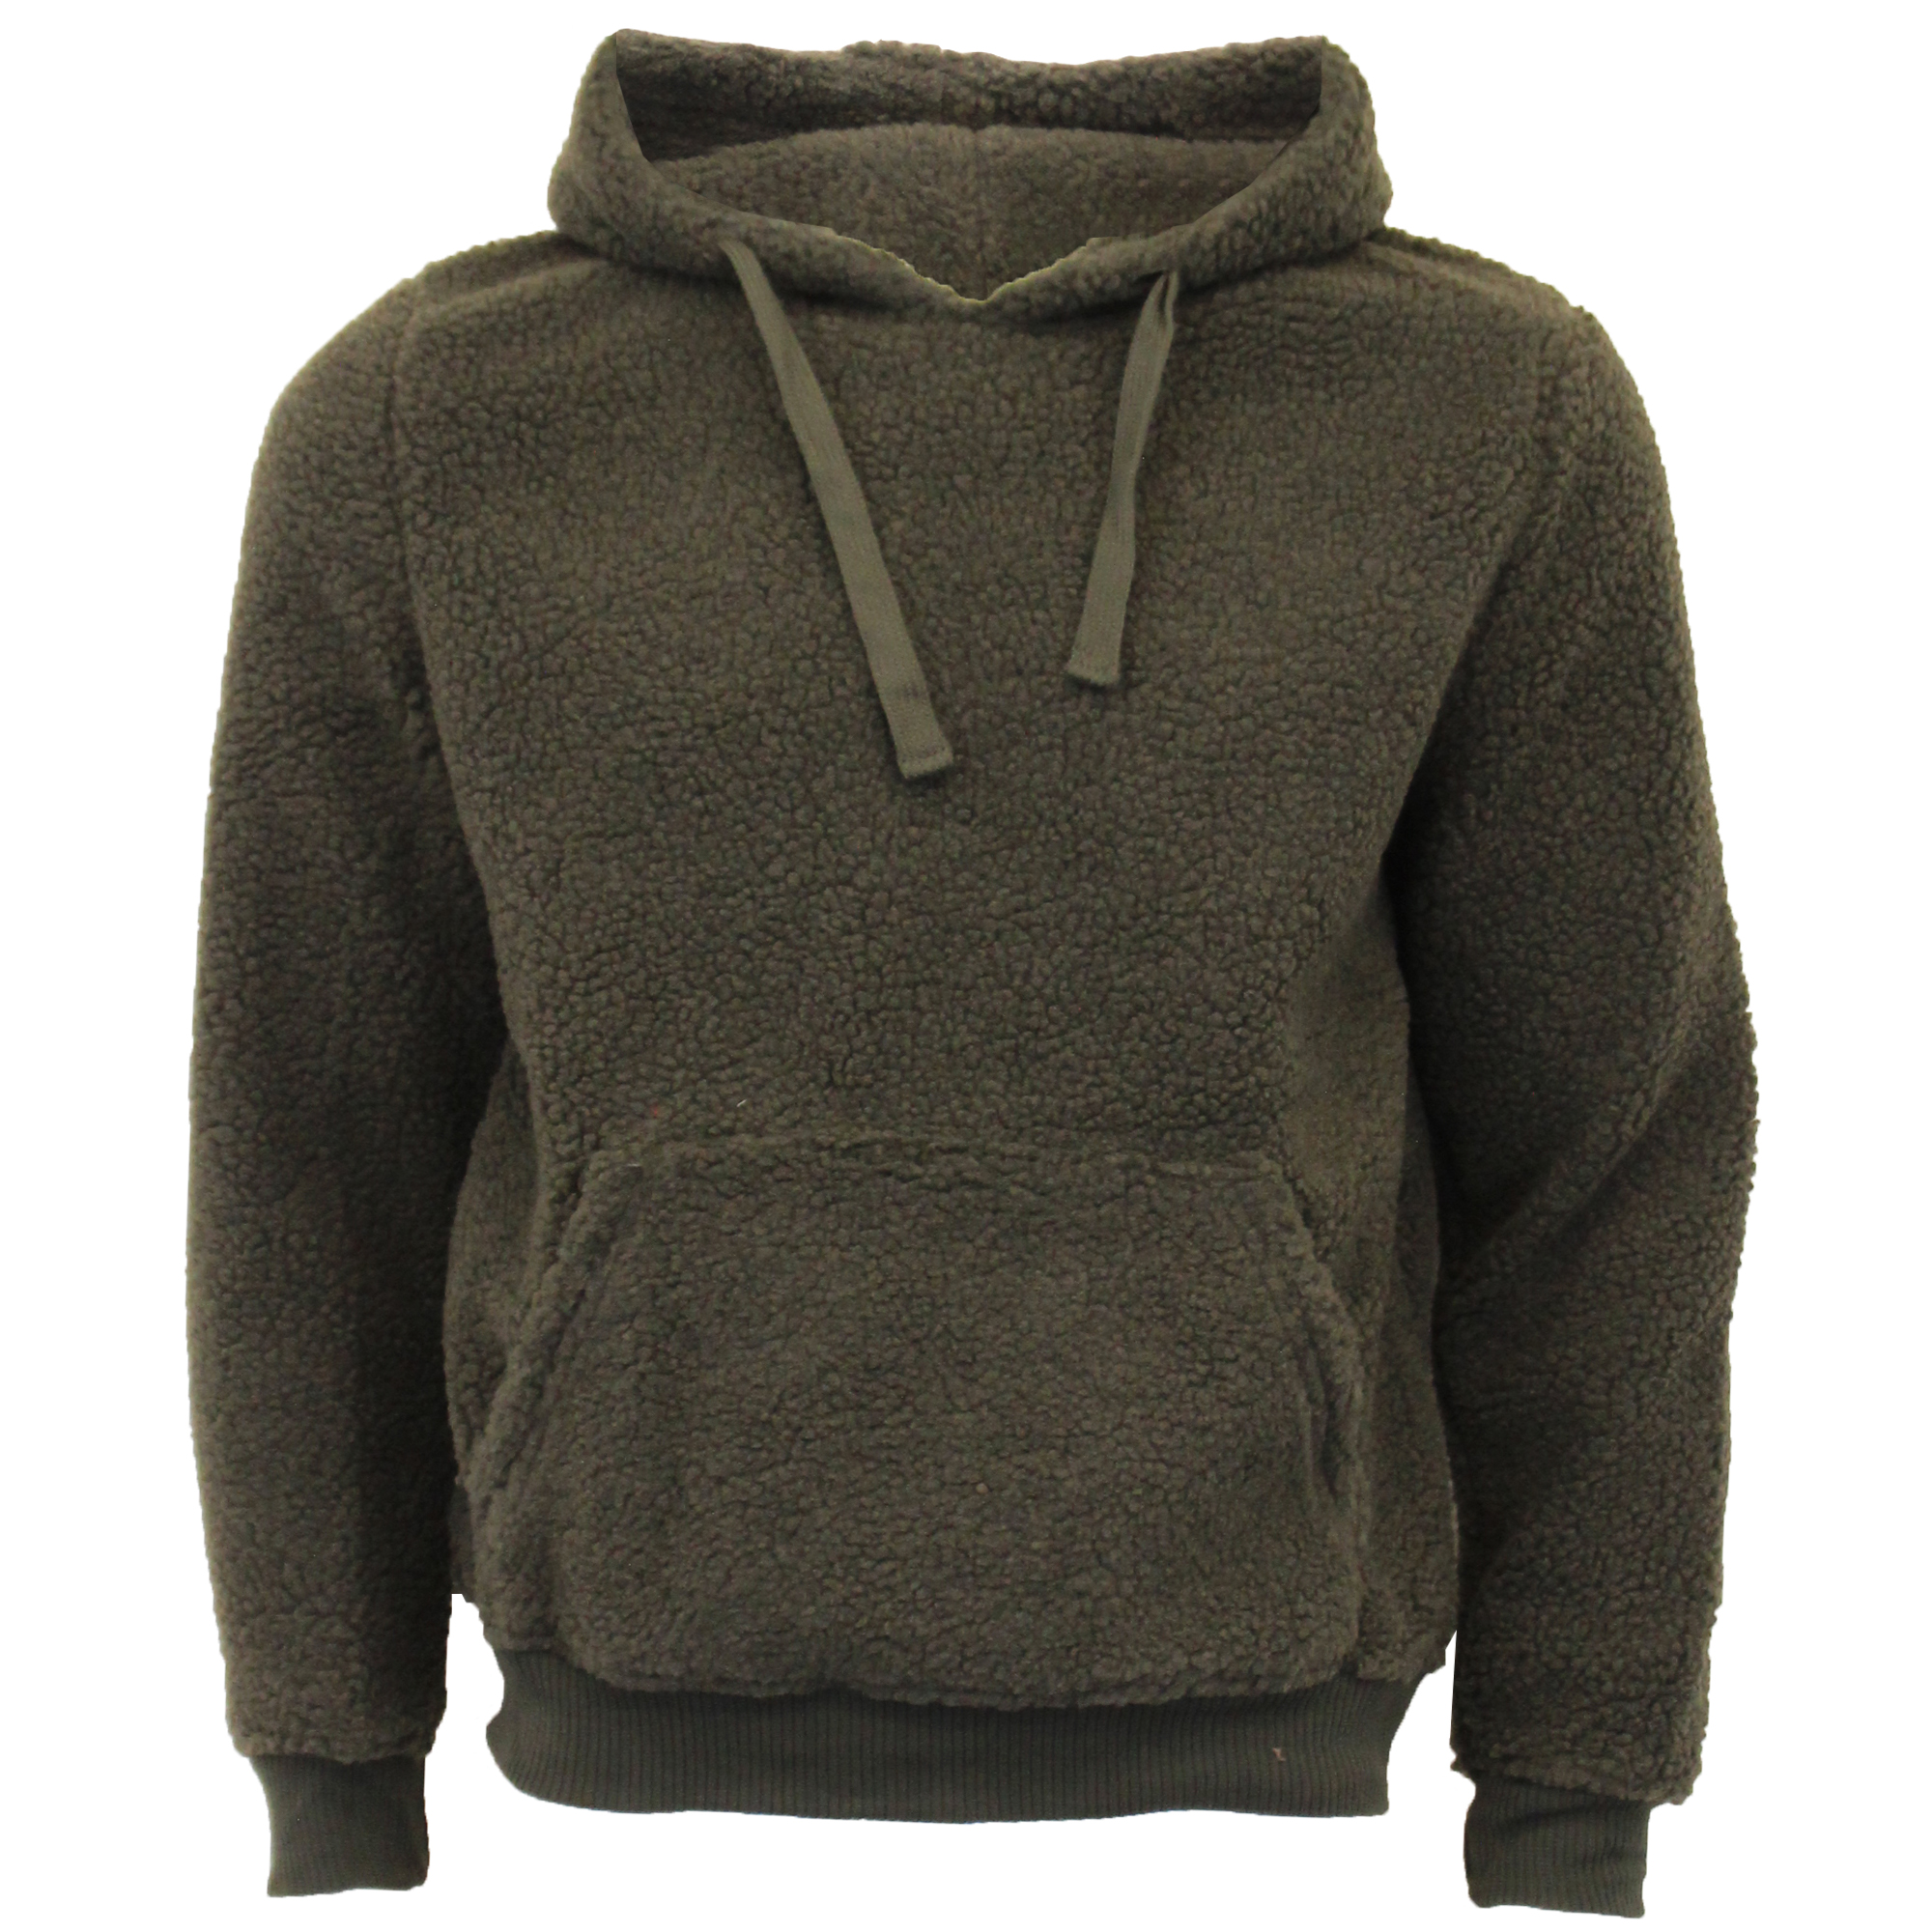 Mens-Sherpa-Fleece-Borg-Sweatshirt-Brave-Soul-Over-The-Head-GROMIT-Hooded-Top thumbnail 6